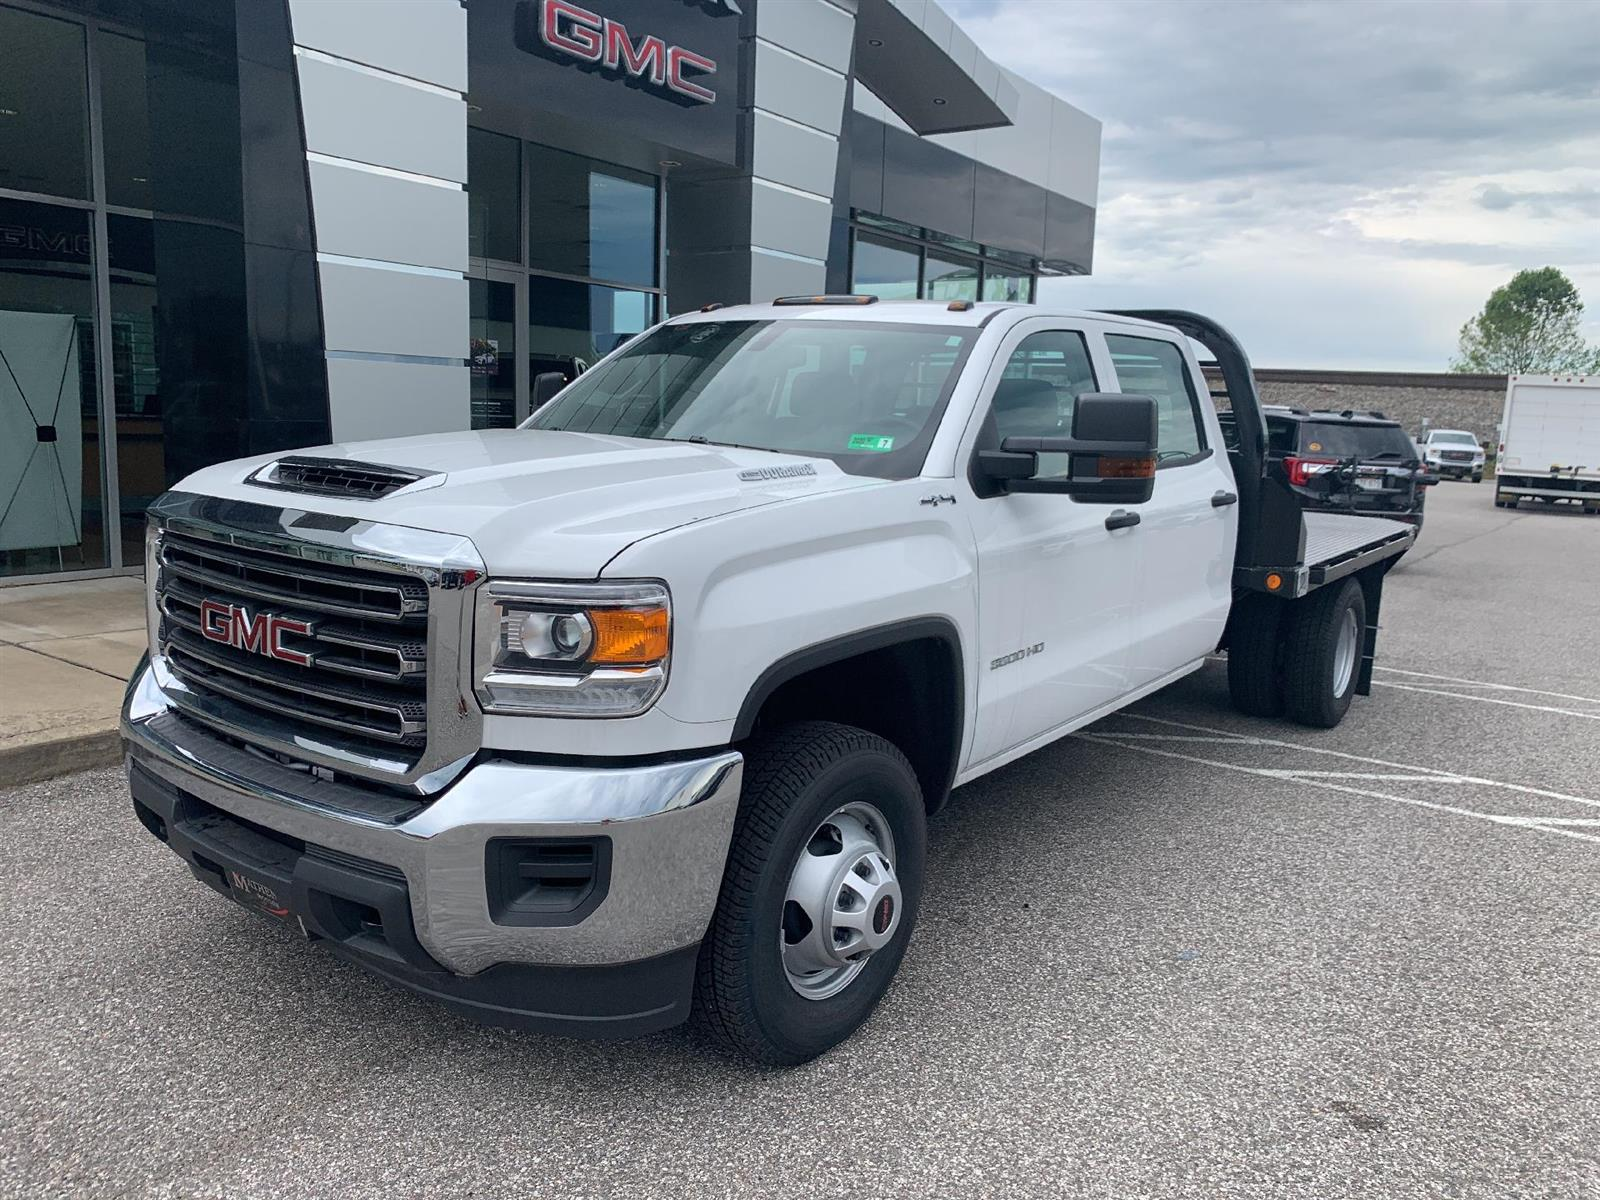 2019 GMC Sierra 3500 Crew Cab DRW 4x4, Reading Redi-Dek Platform Body #254765 - photo 1